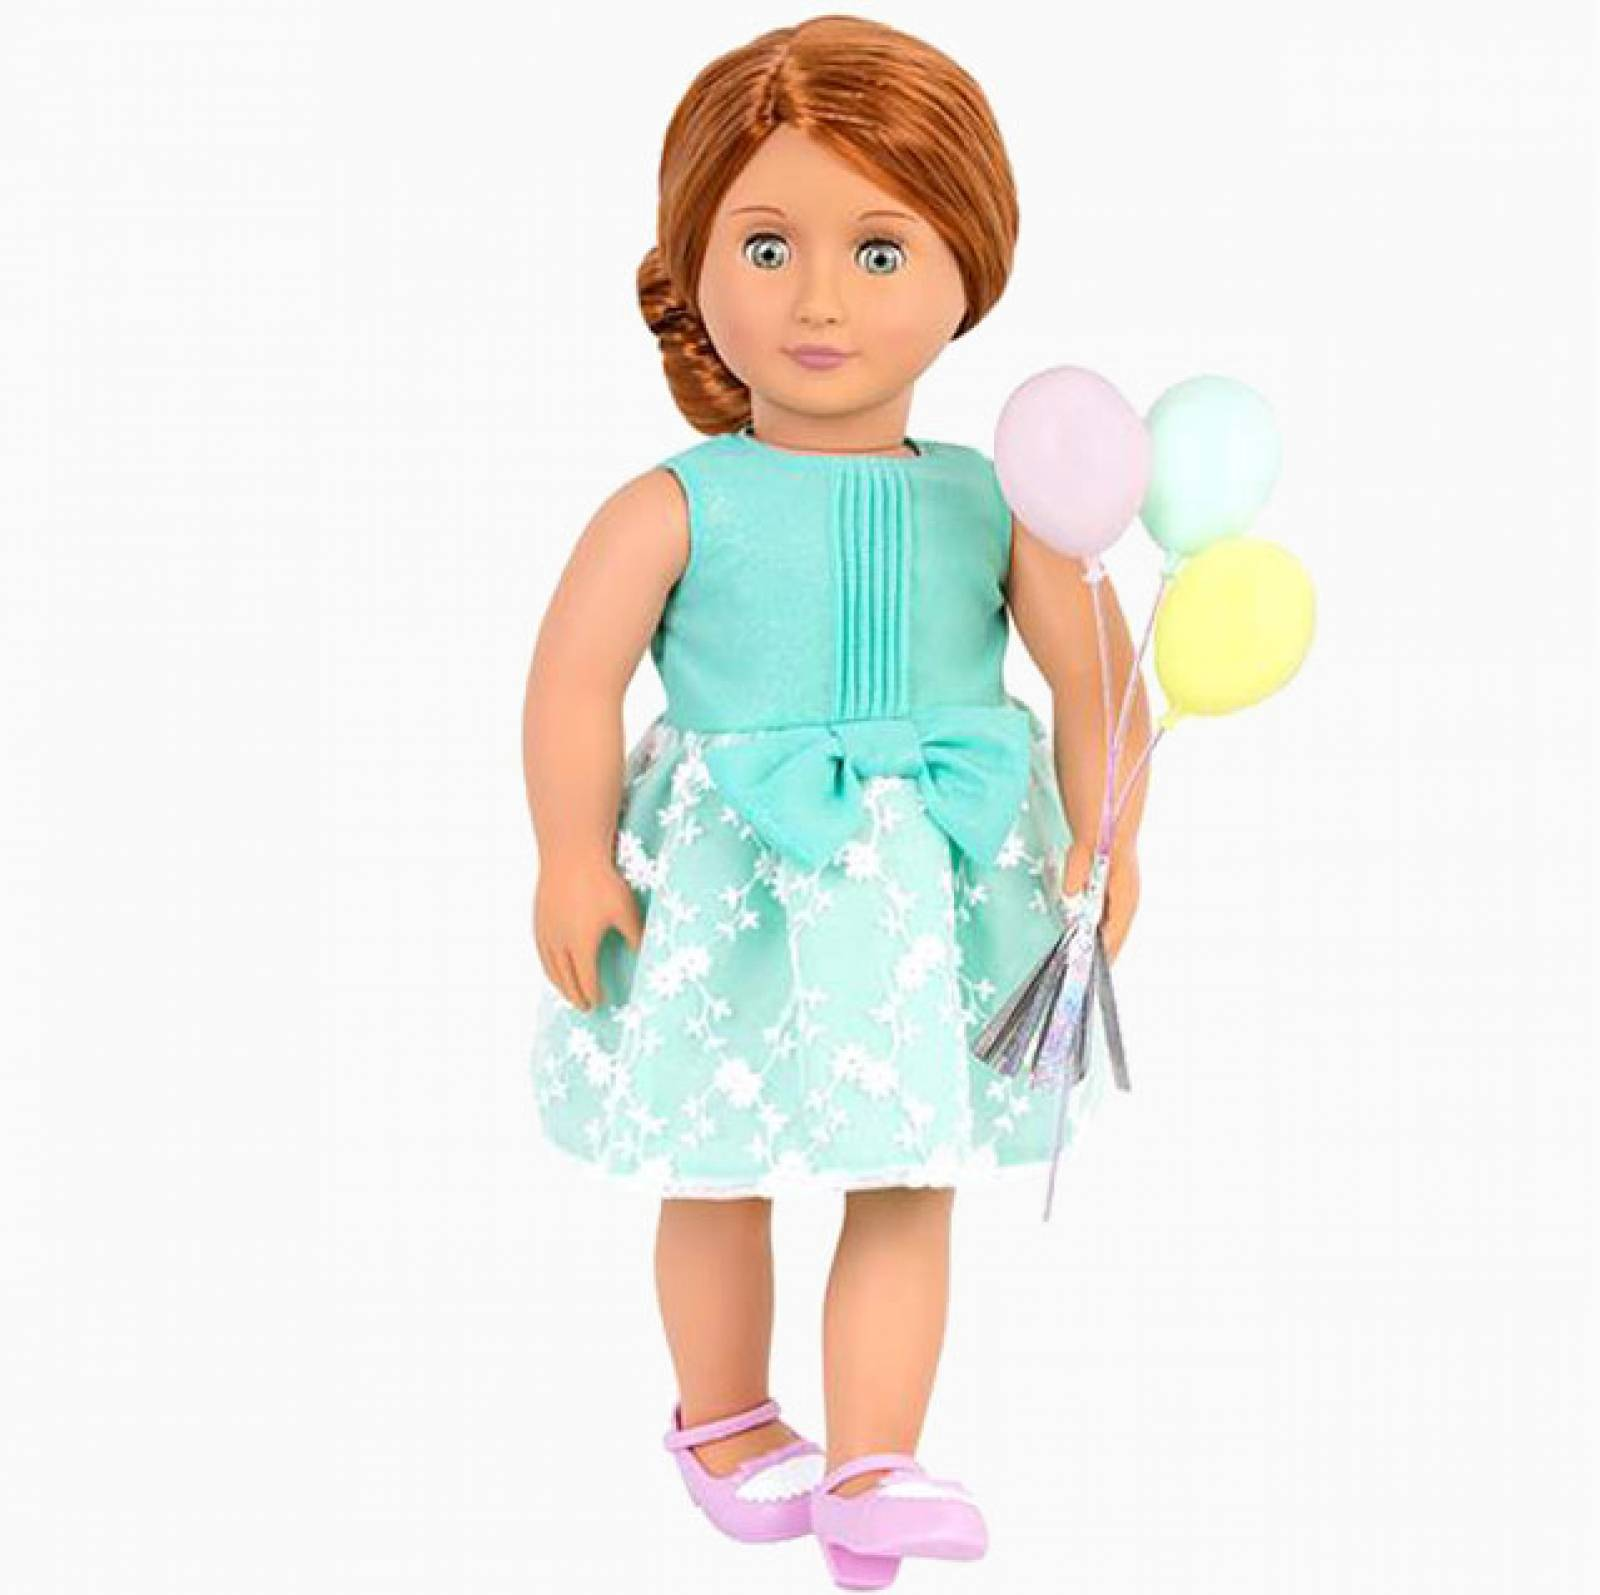 Party Perfect - Our Generation Doll Clothes Set 3+ thumbnails